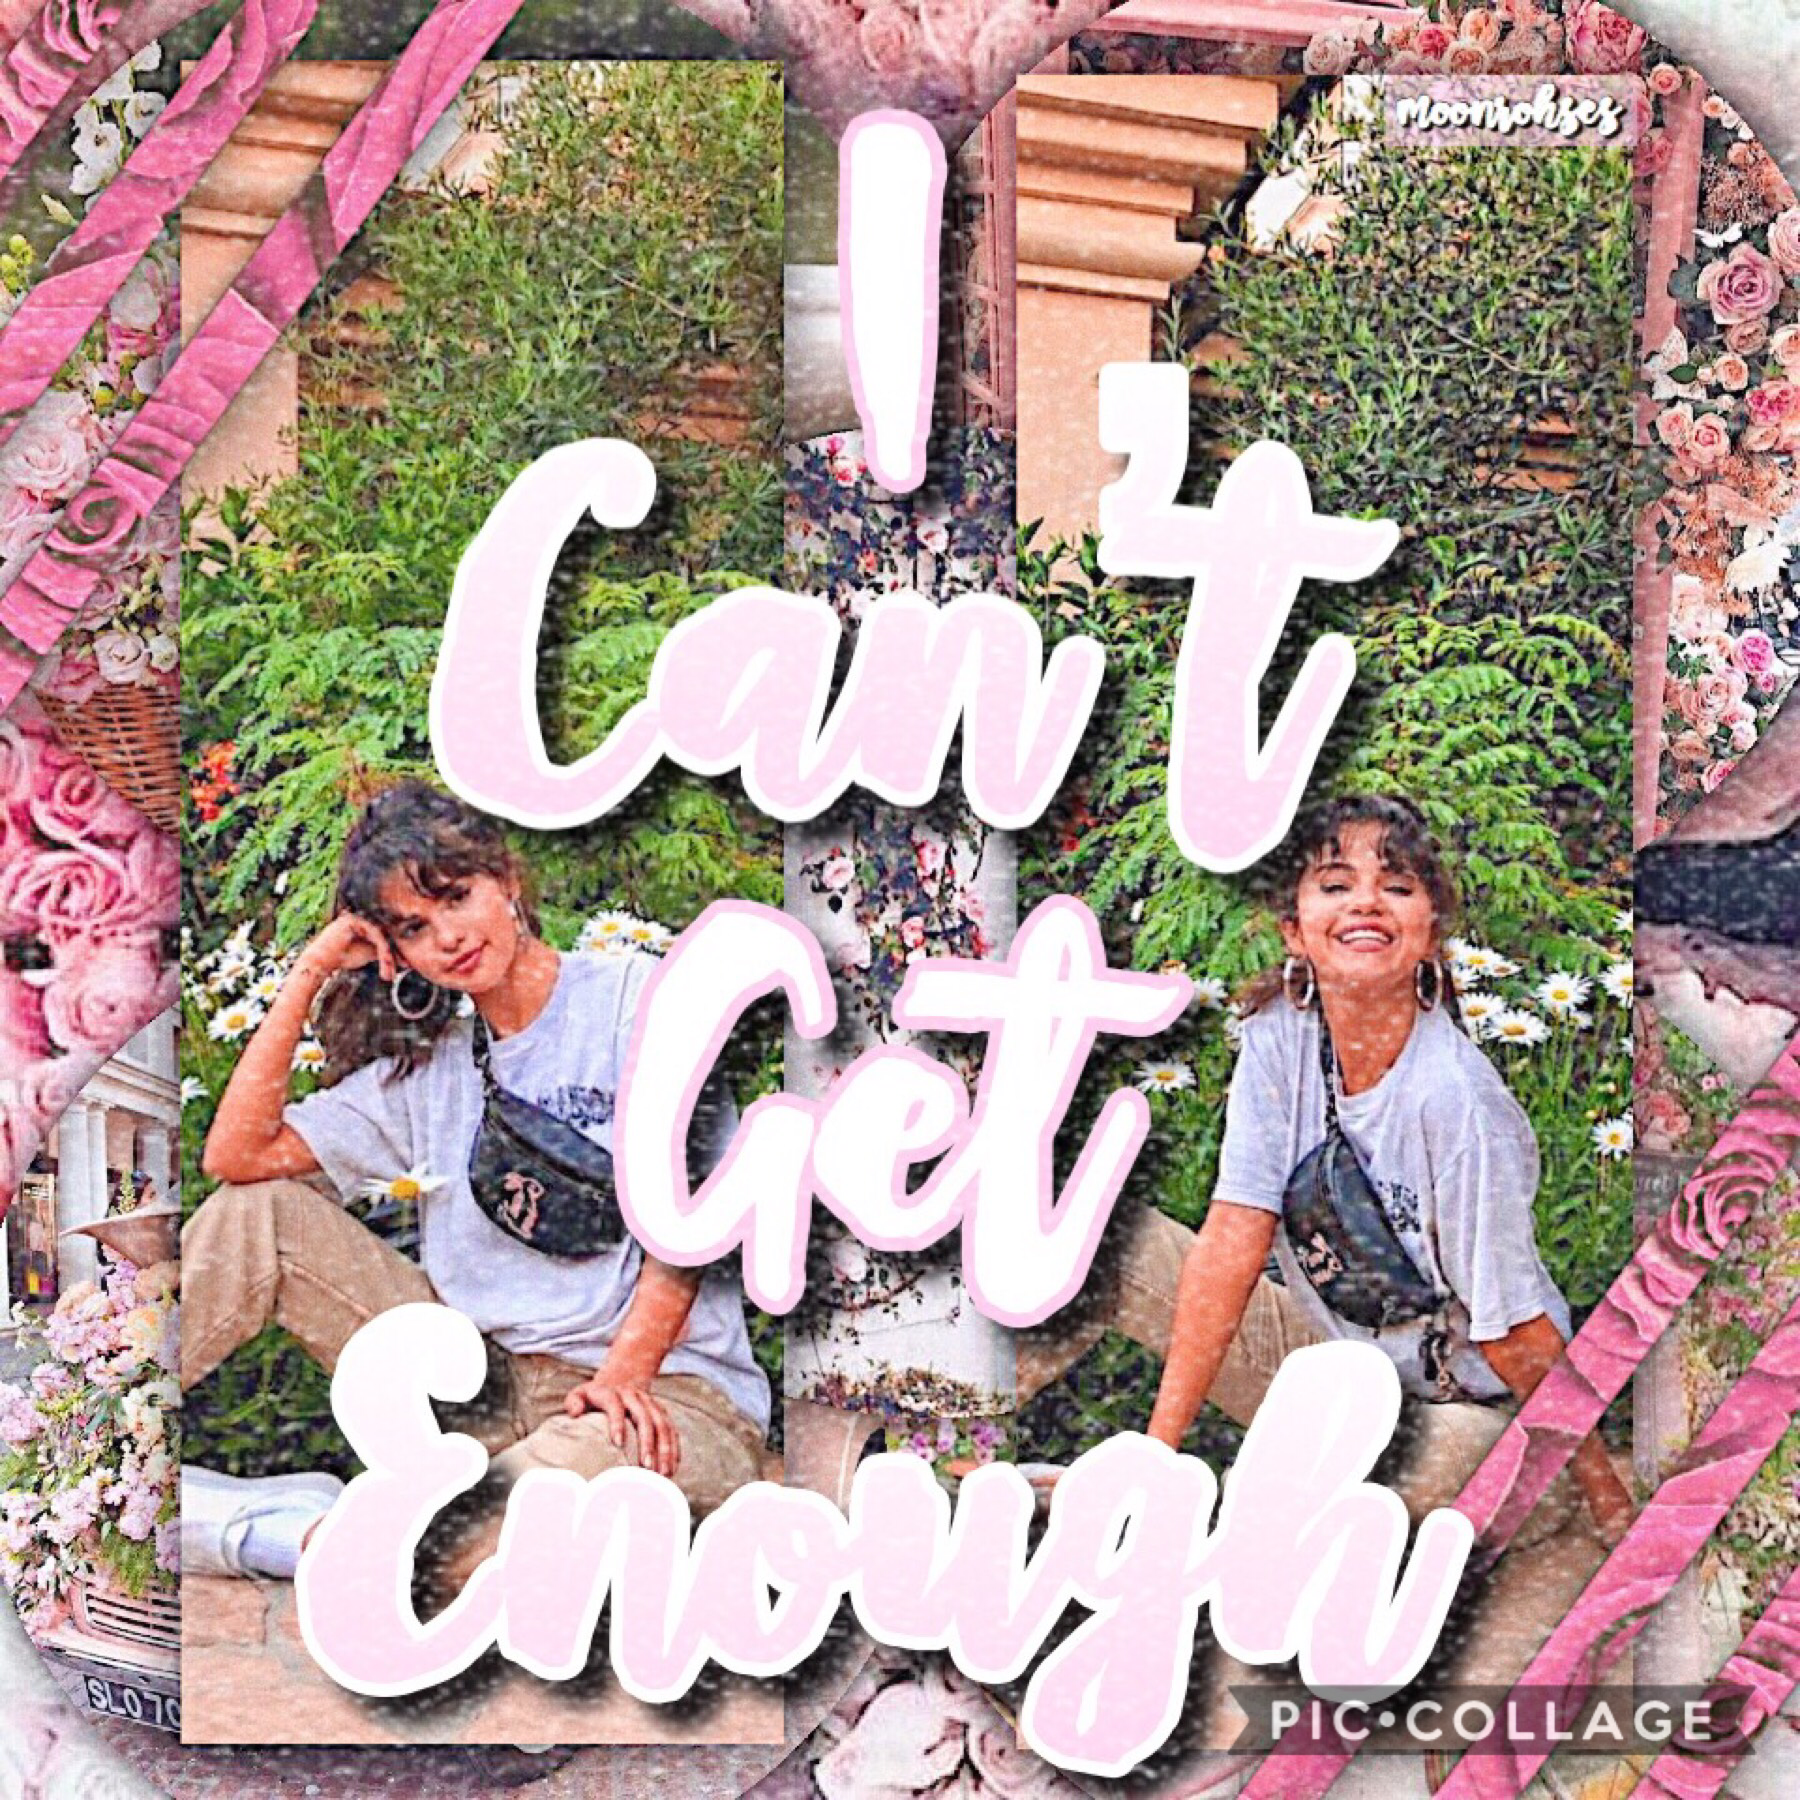 🌷 t a p 🌷  Song - I cant get enough - Benny Blanco, Tainy, Selena Gomez, J Balvin   Rate ?/10   I still have a lot of edits to post oof